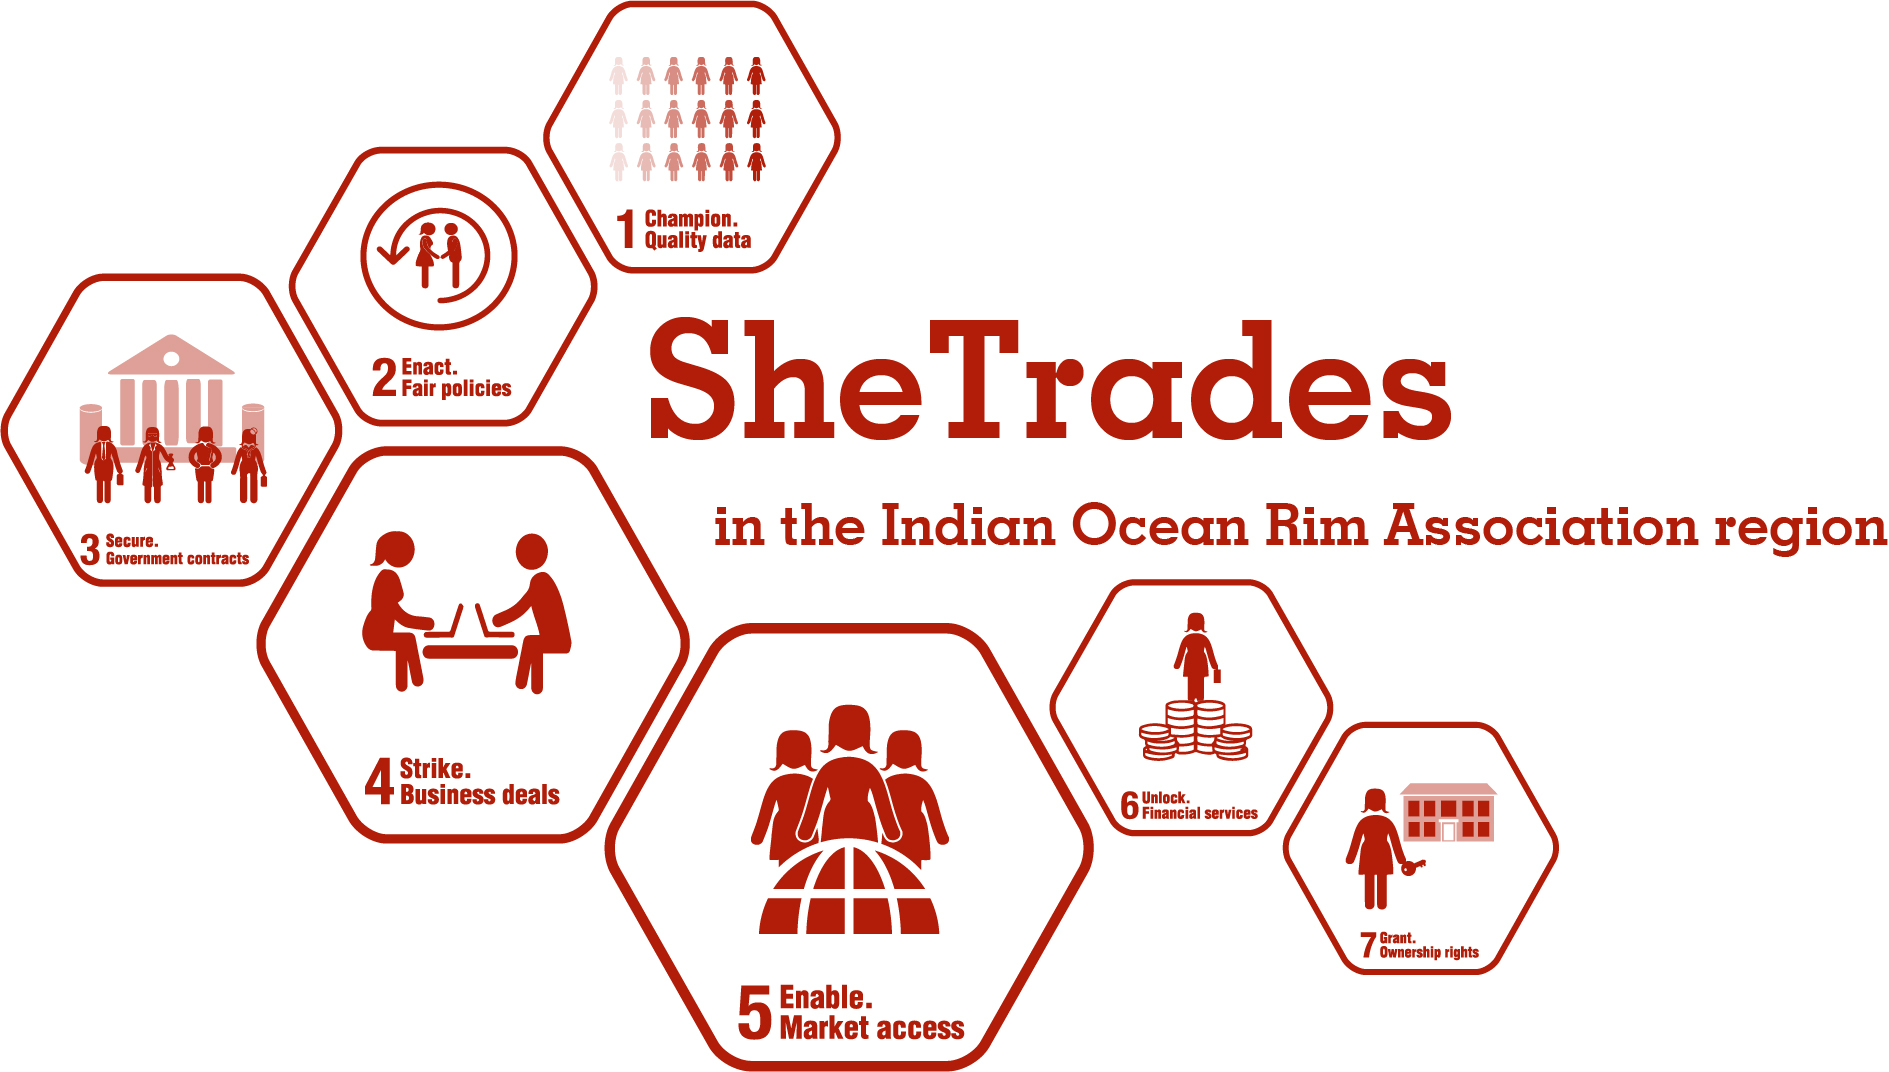 SheTrades in the IORA region